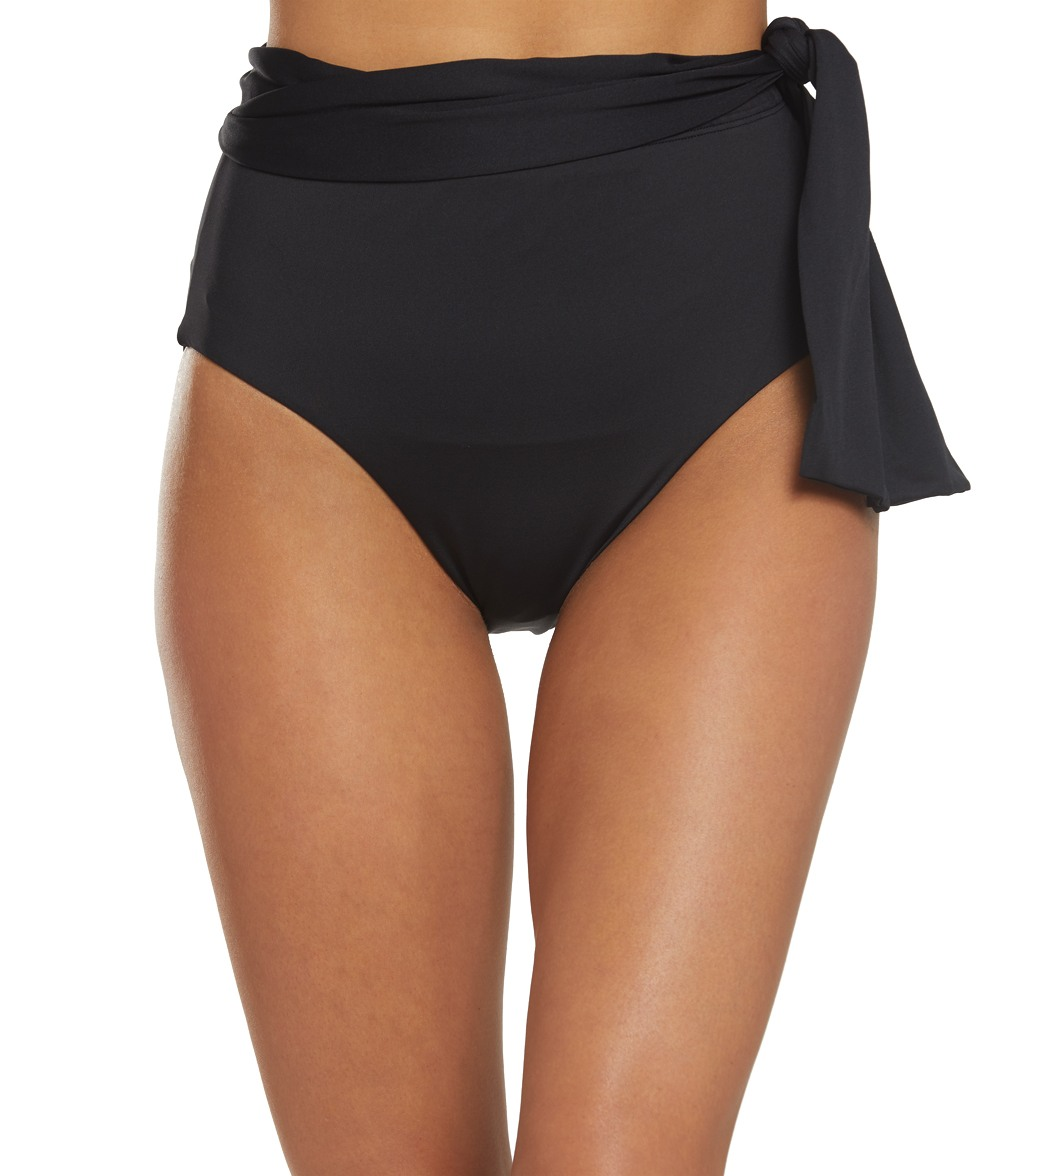 b3d30ceed Lauren Ralph Lauren Beach Club Solids High Waisted Tie Bikini Bottom at  SwimOutlet.com - Free Shipping